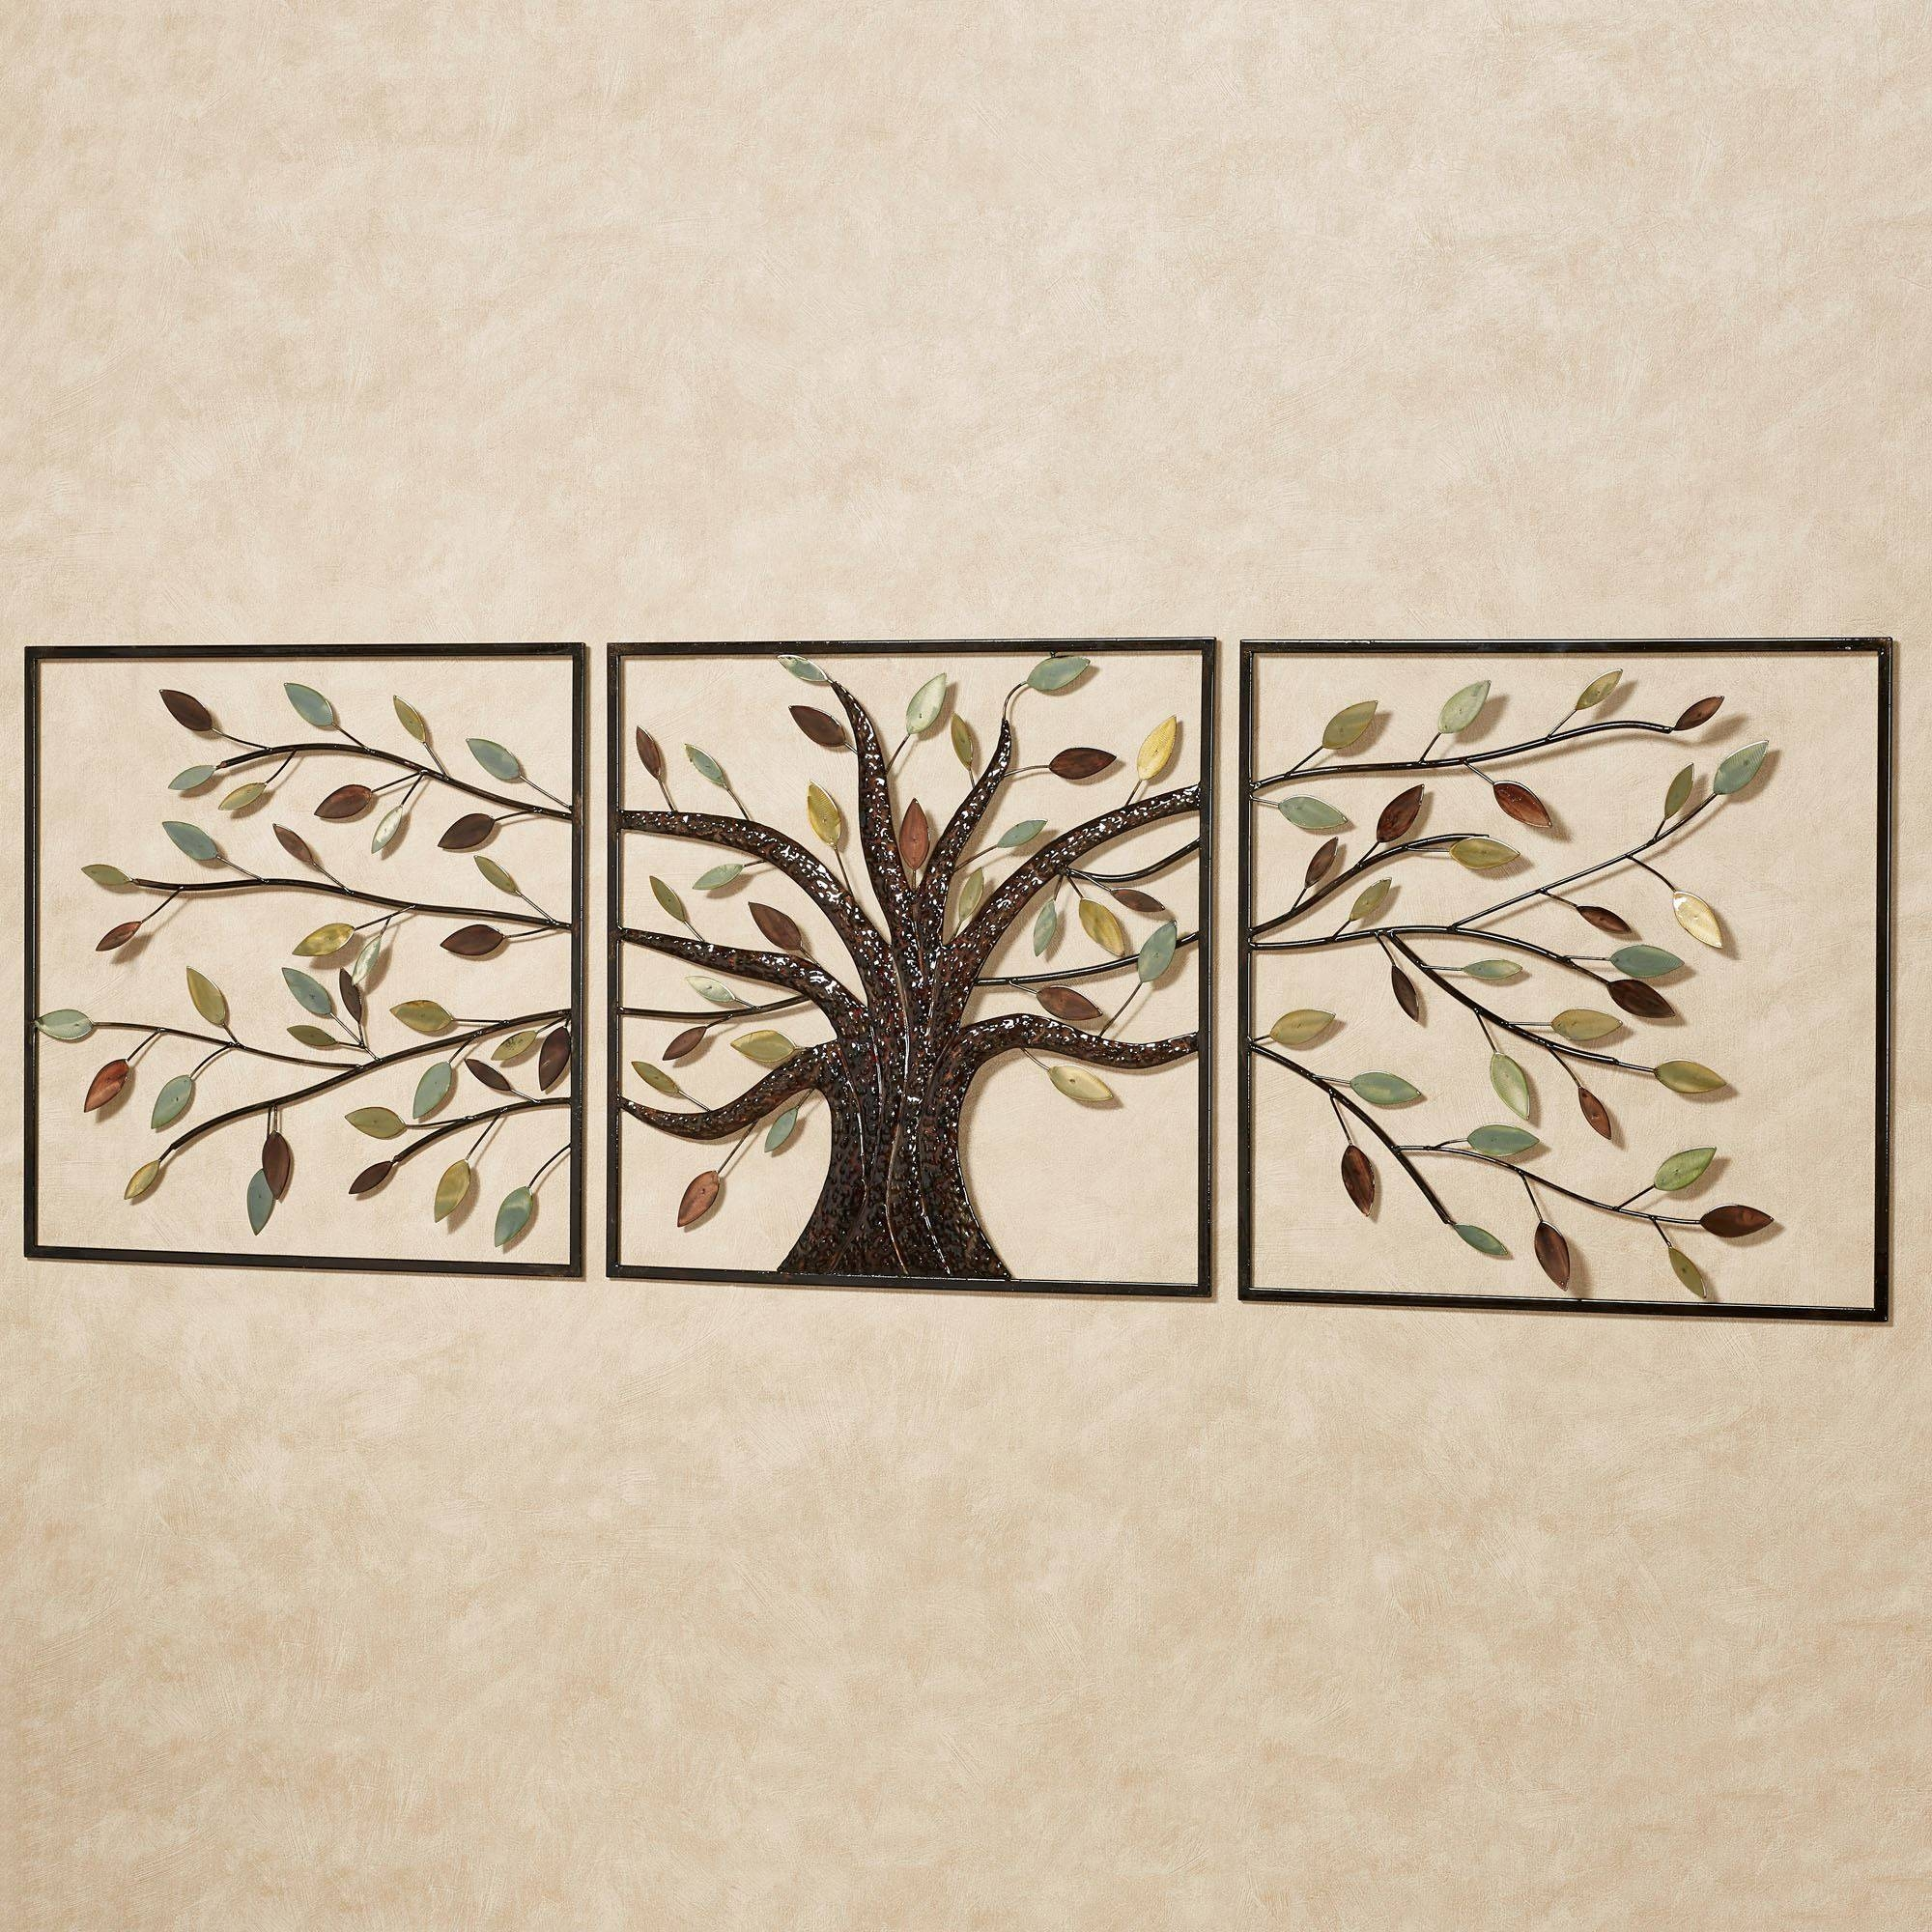 Ever Changing Brown Tree Metal Wall Art Set Intended For Newest Metal Wall Art Trees And Branches (View 3 of 18)